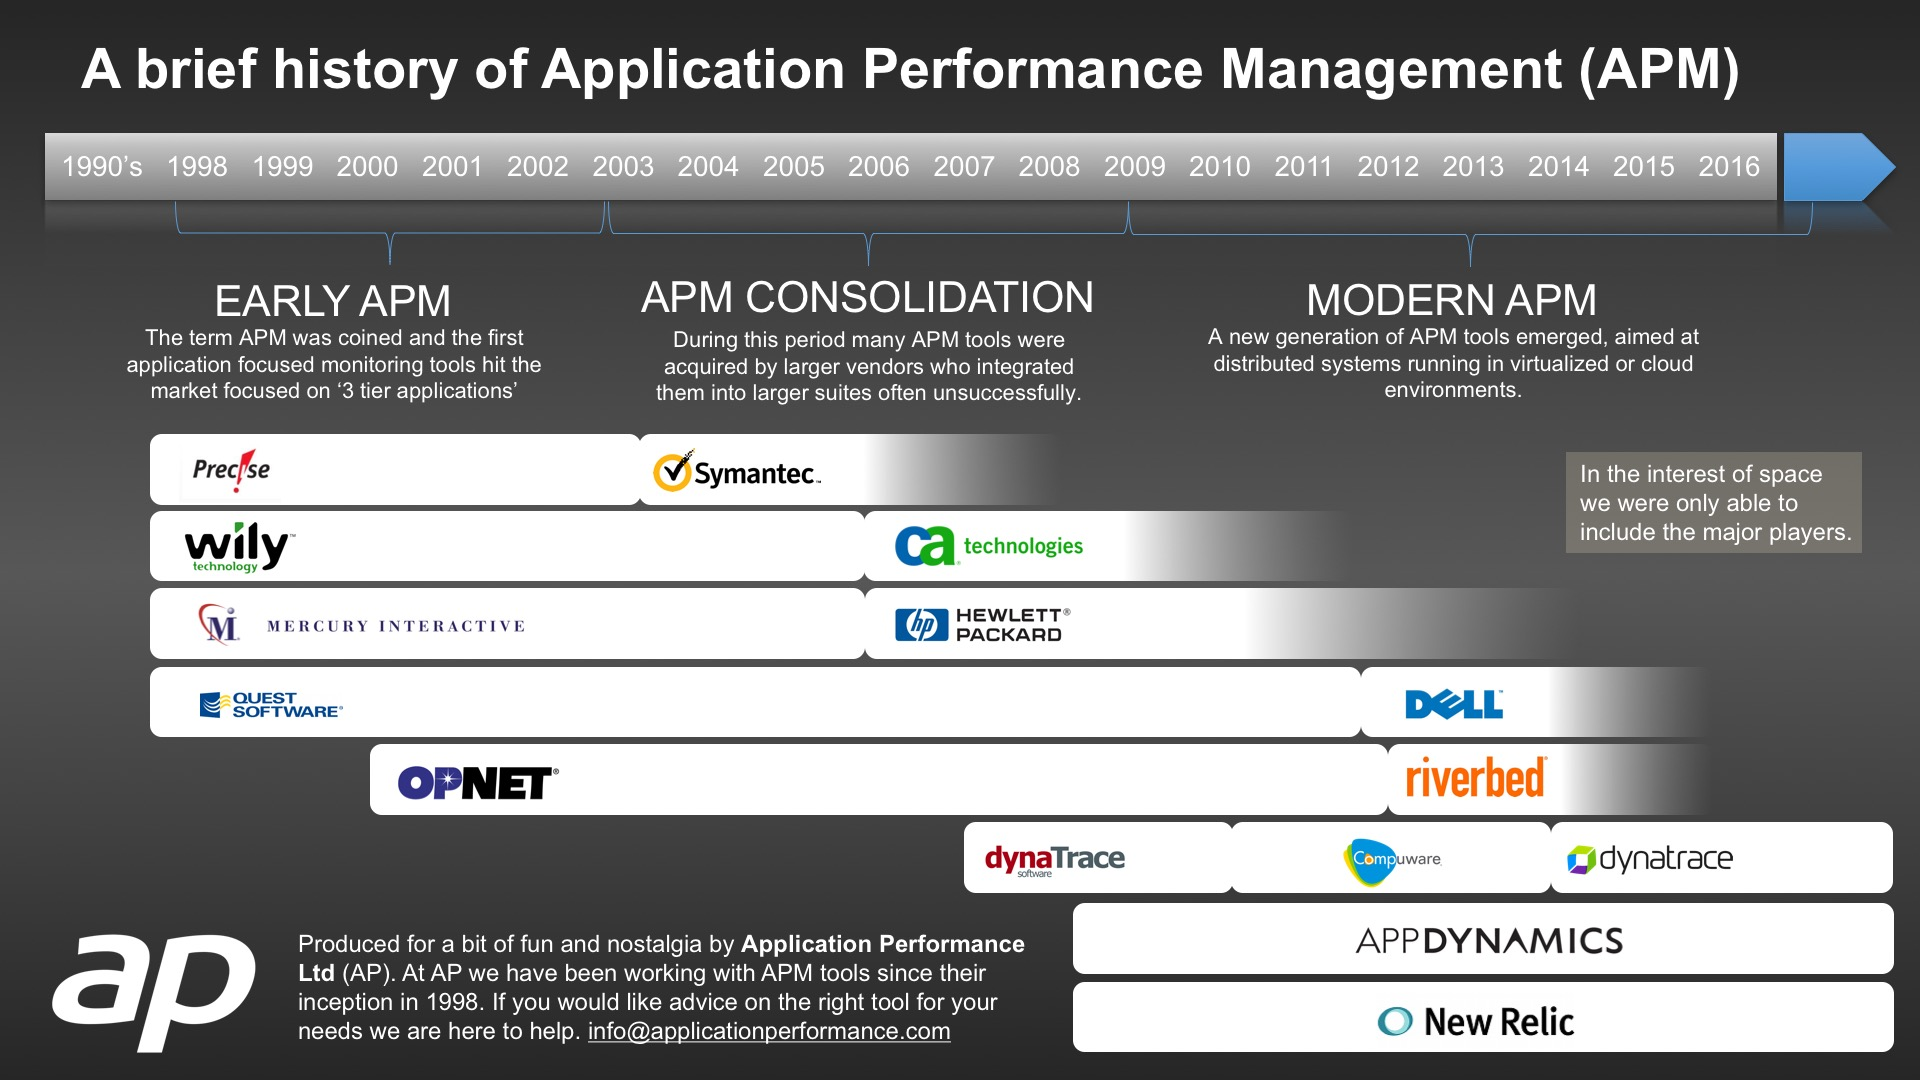 A brief history of Application Performance Management (APM)